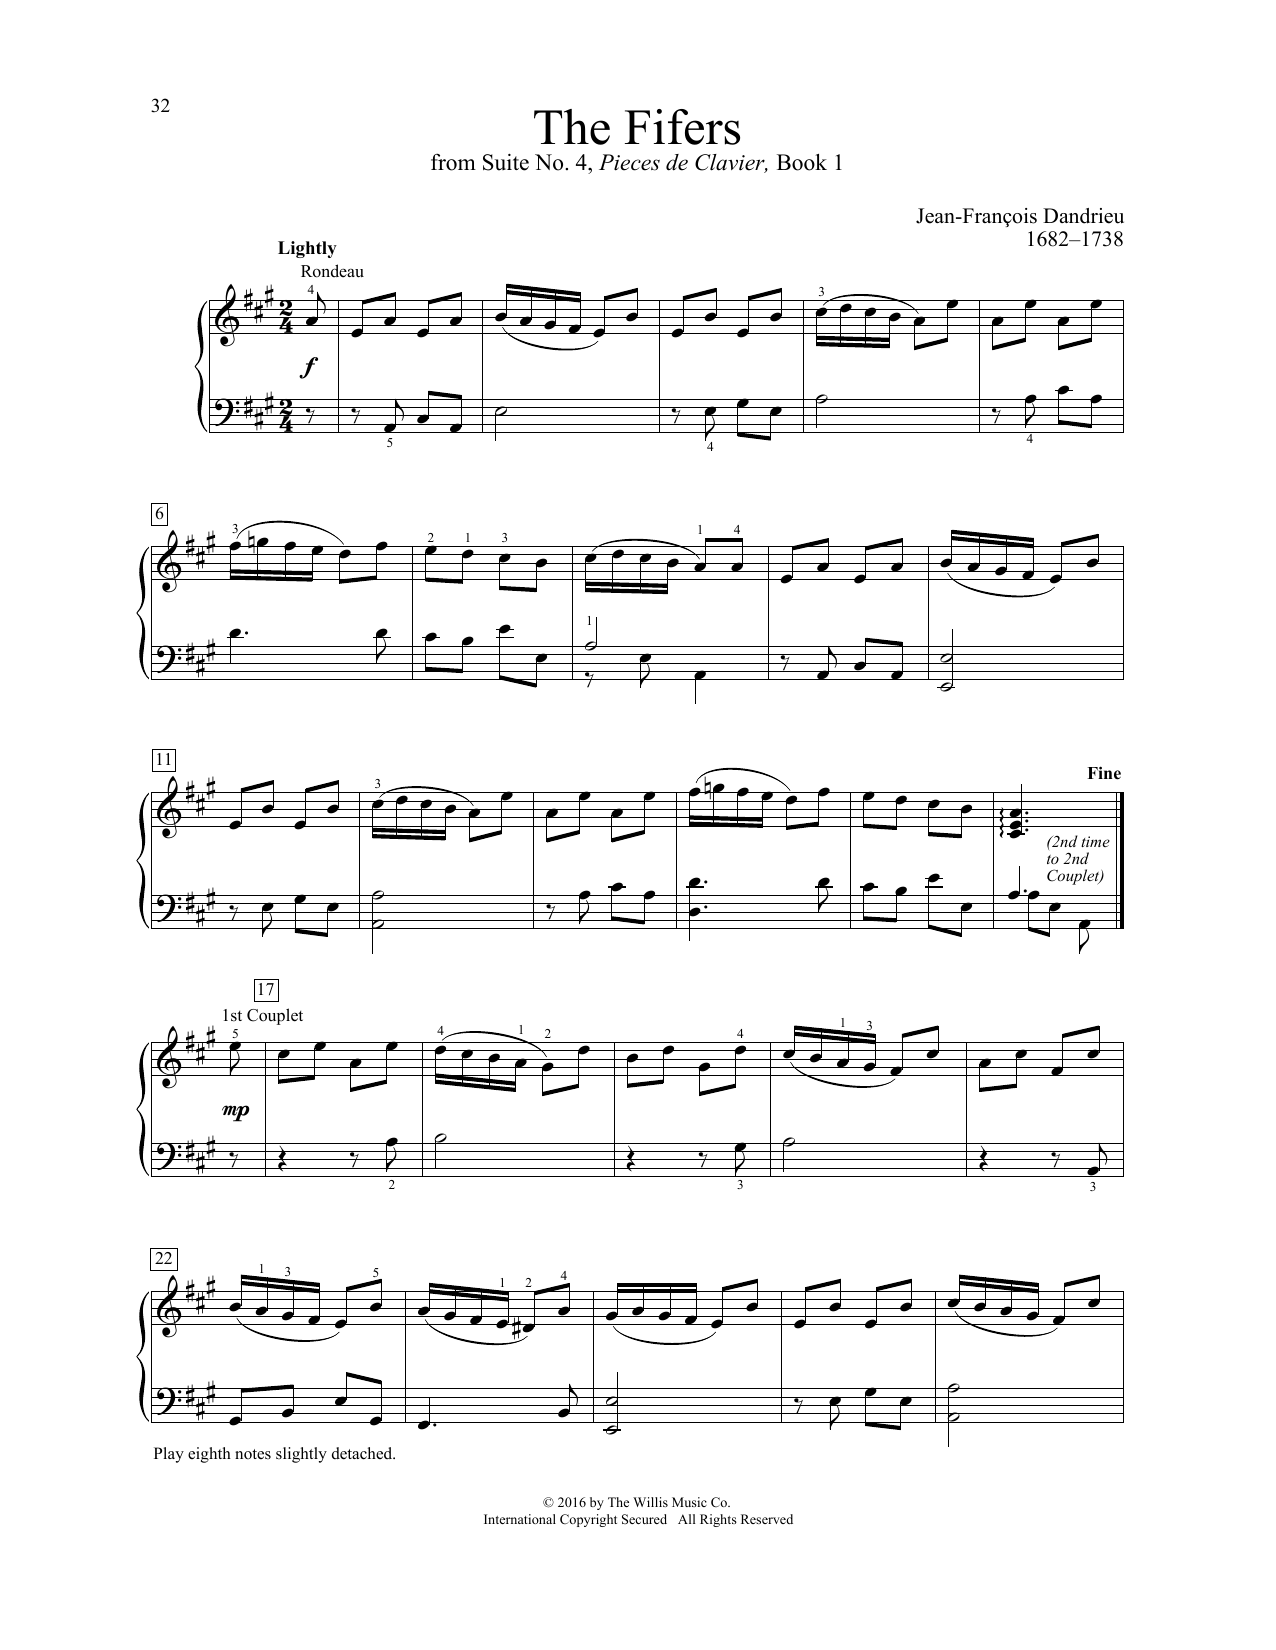 Jean-Francois Dandrieu The Fifers sheet music notes and chords. Download Printable PDF.